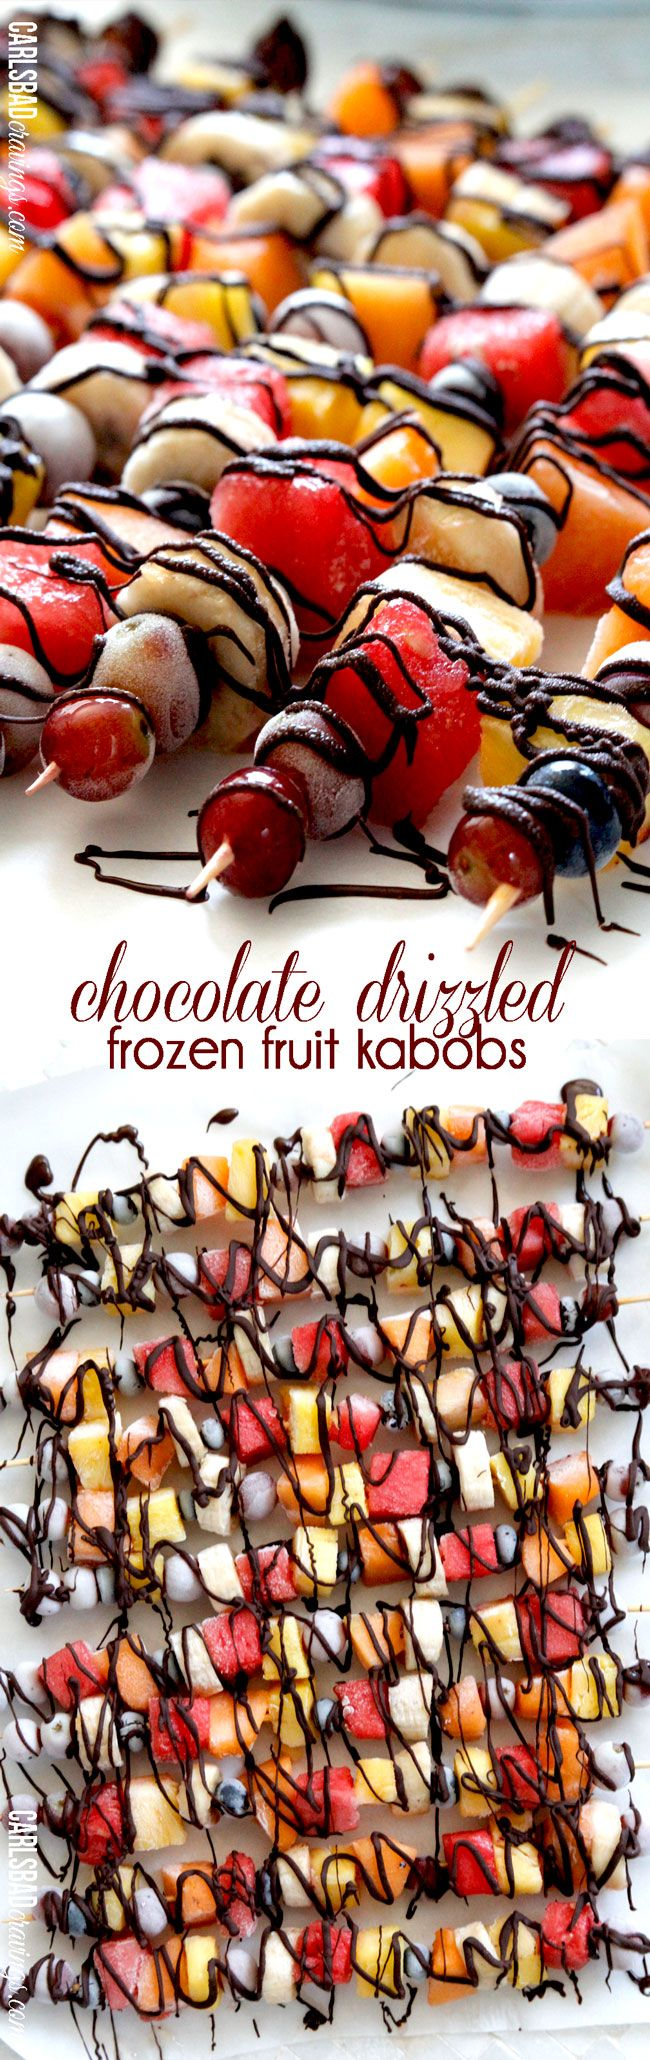 Have you ever had frozen fruit? It tastes like candy! Freeze your favorite fruit then drizzle with chocolate for the perfect light dessert, refreshing snack, or guiltless indulgence. I make these ahead of time and keep them in my freezer to munch whenever I have a chocolate fruit craving!